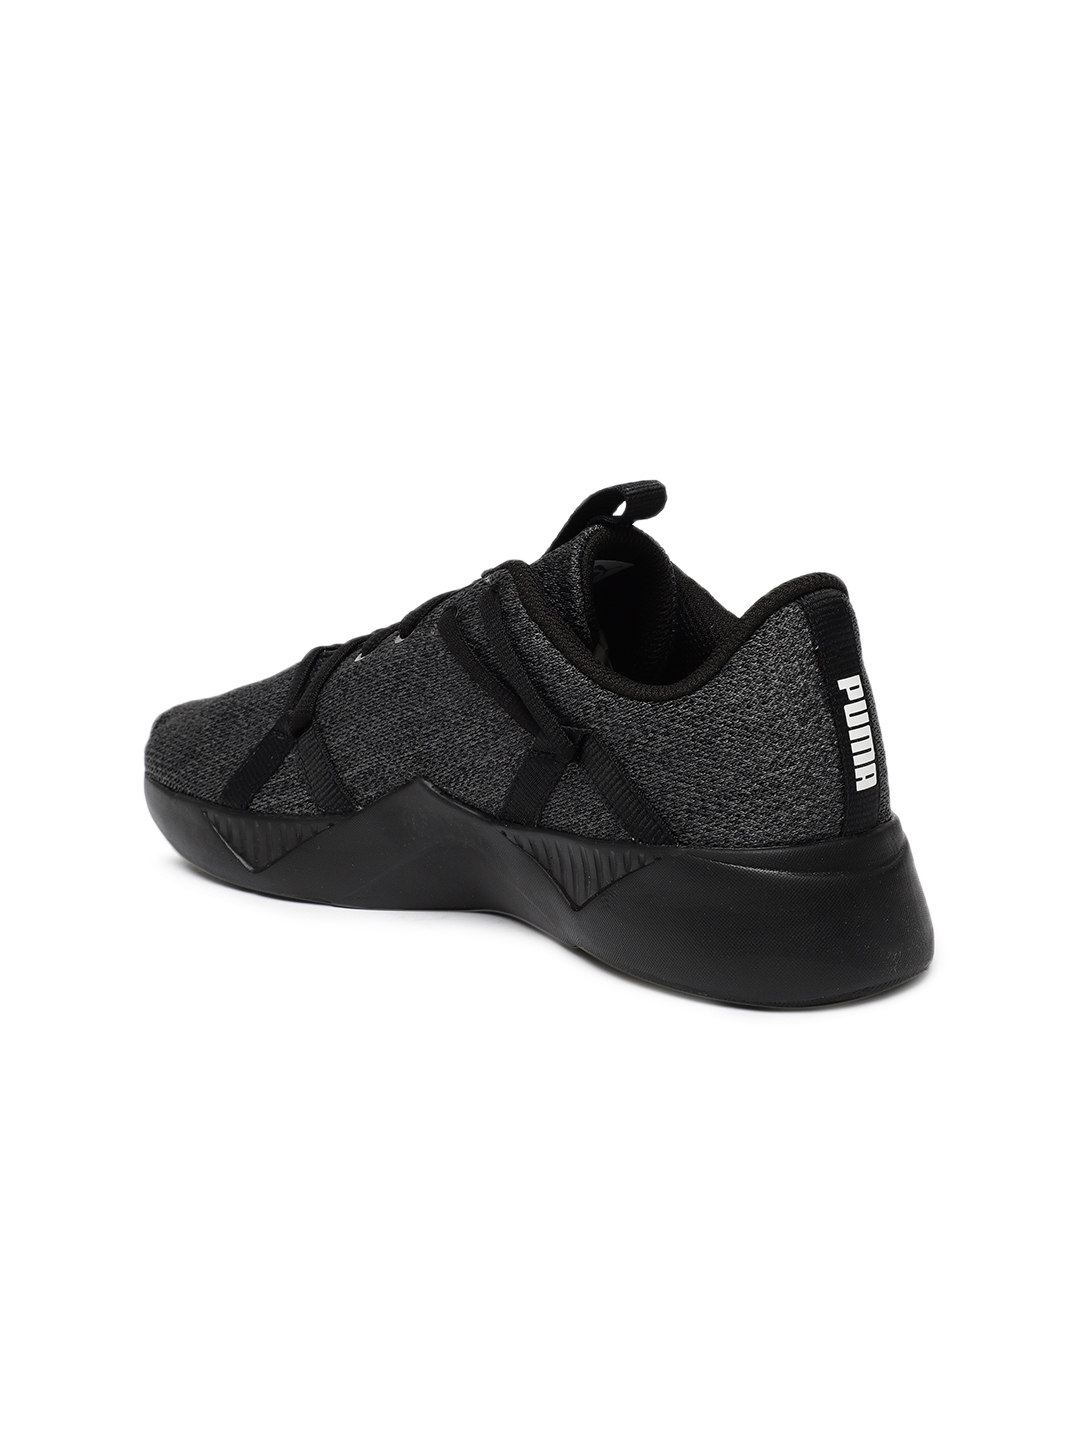 460bb923d9159 Buy Puma Women Black Incite Knitted Training Shoes - Sports Shoes ...